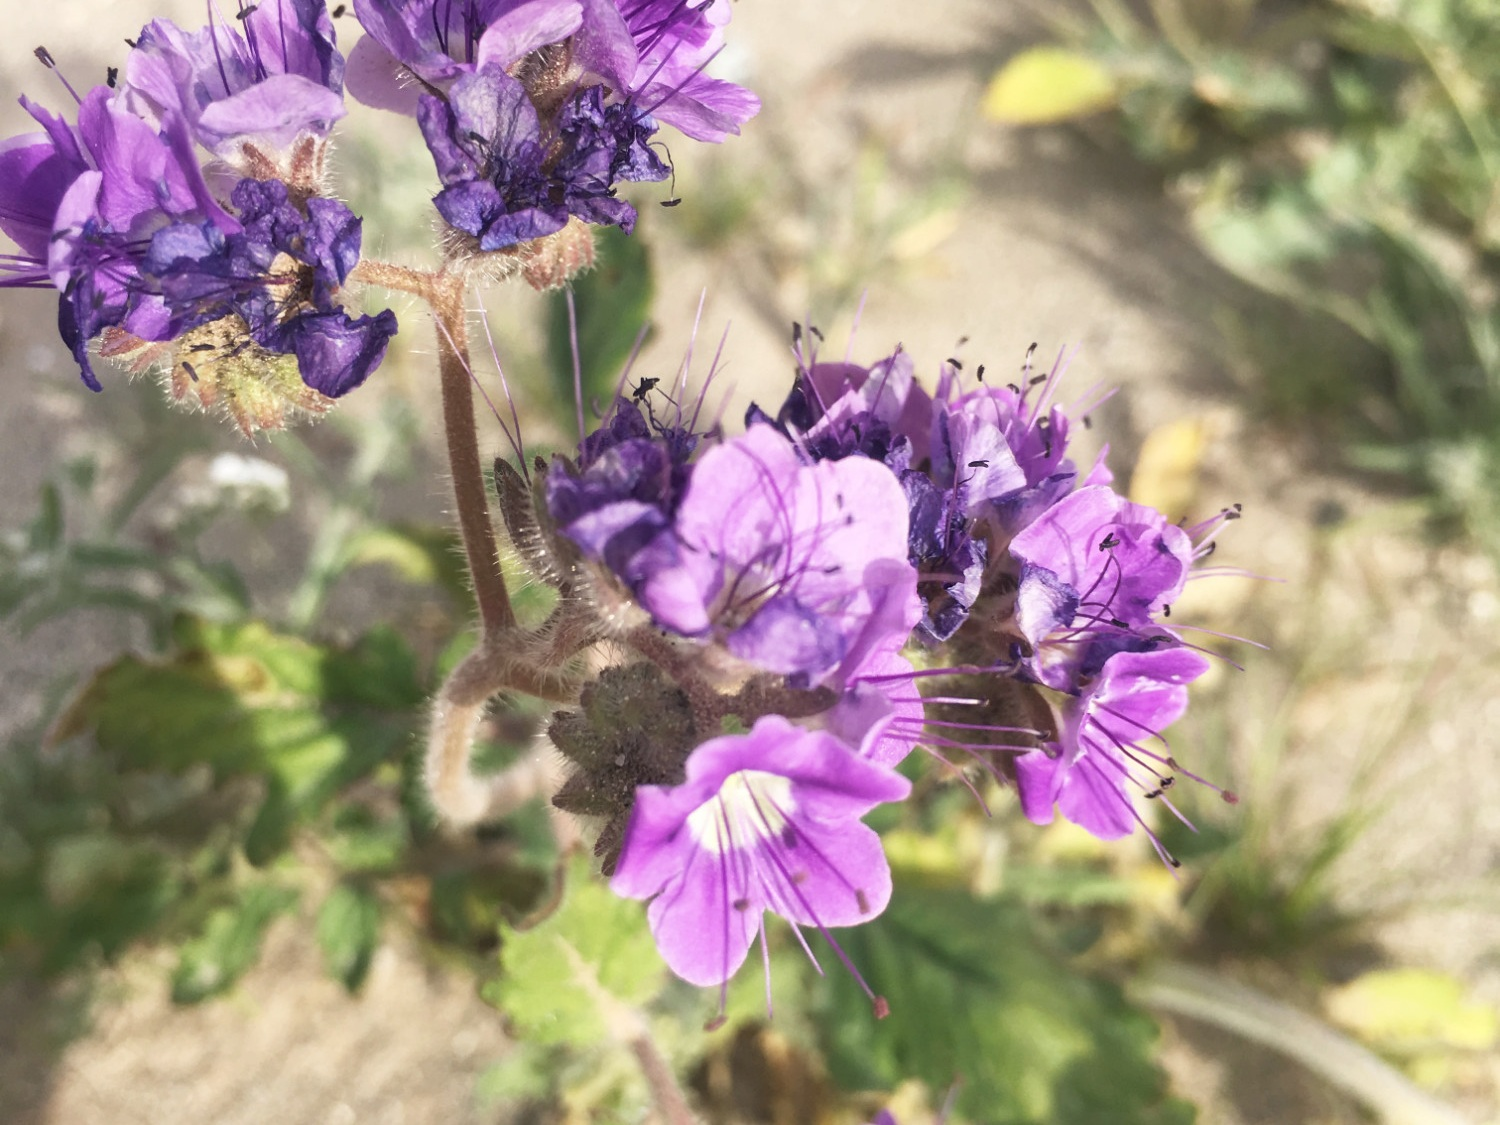 Wild Heliotrope (Phacelia Distans) - A native of the Sonoran Desert, Wild Heliotrope is also called Scorpionweed. They have small purple flowers that bunch together on top of a hairy stem. But be careful — if you touch the stem, it can leave a smell on your hands!